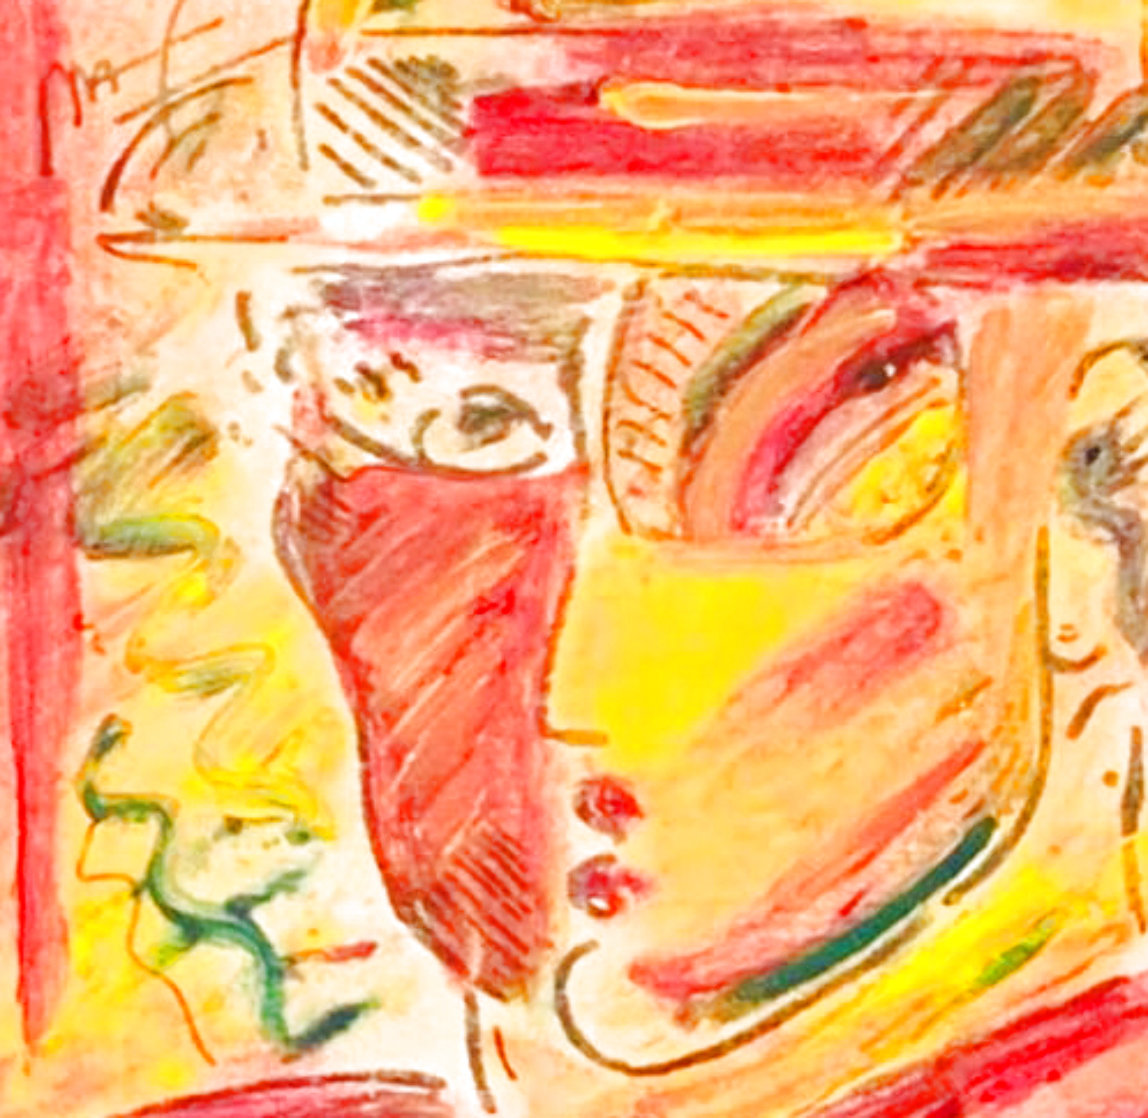 Profile 1988 12x18 Original Painting by Peter Max